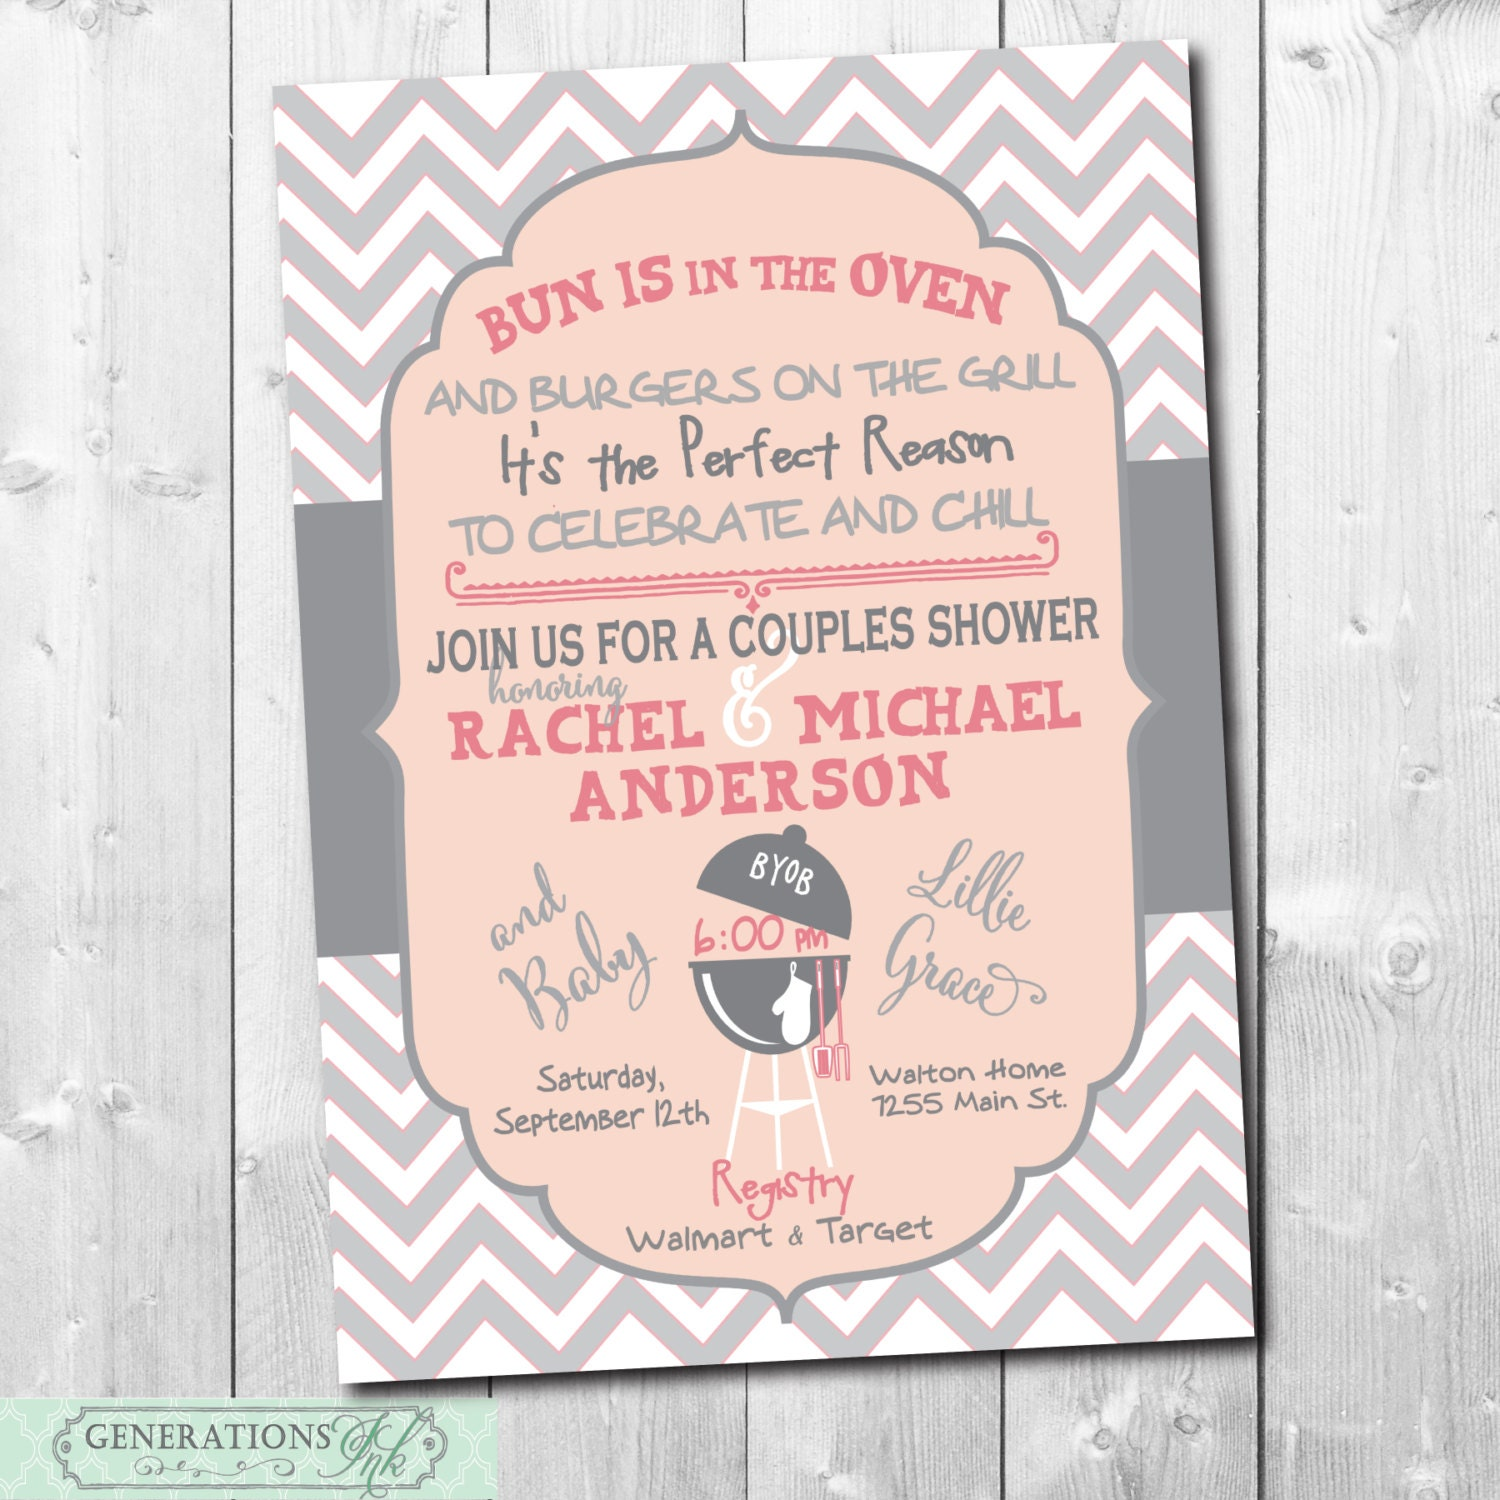 Baby Gifts For Couples : Couples baby shower invitation bun is in the